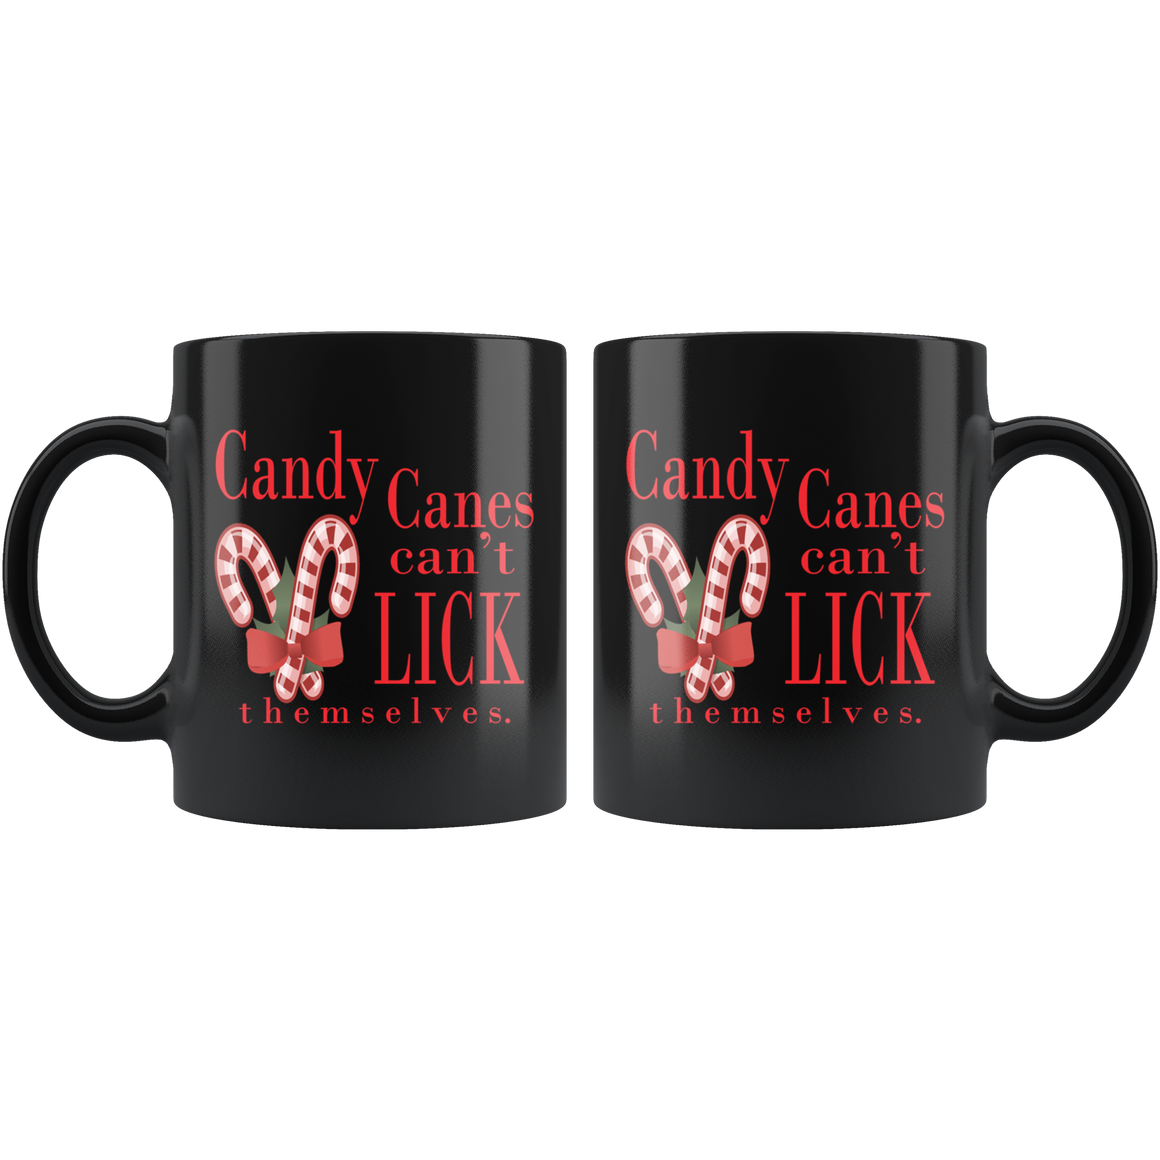 Funny Candy Canes Can't Lick Themselves Christmas Coffee Tea Mug